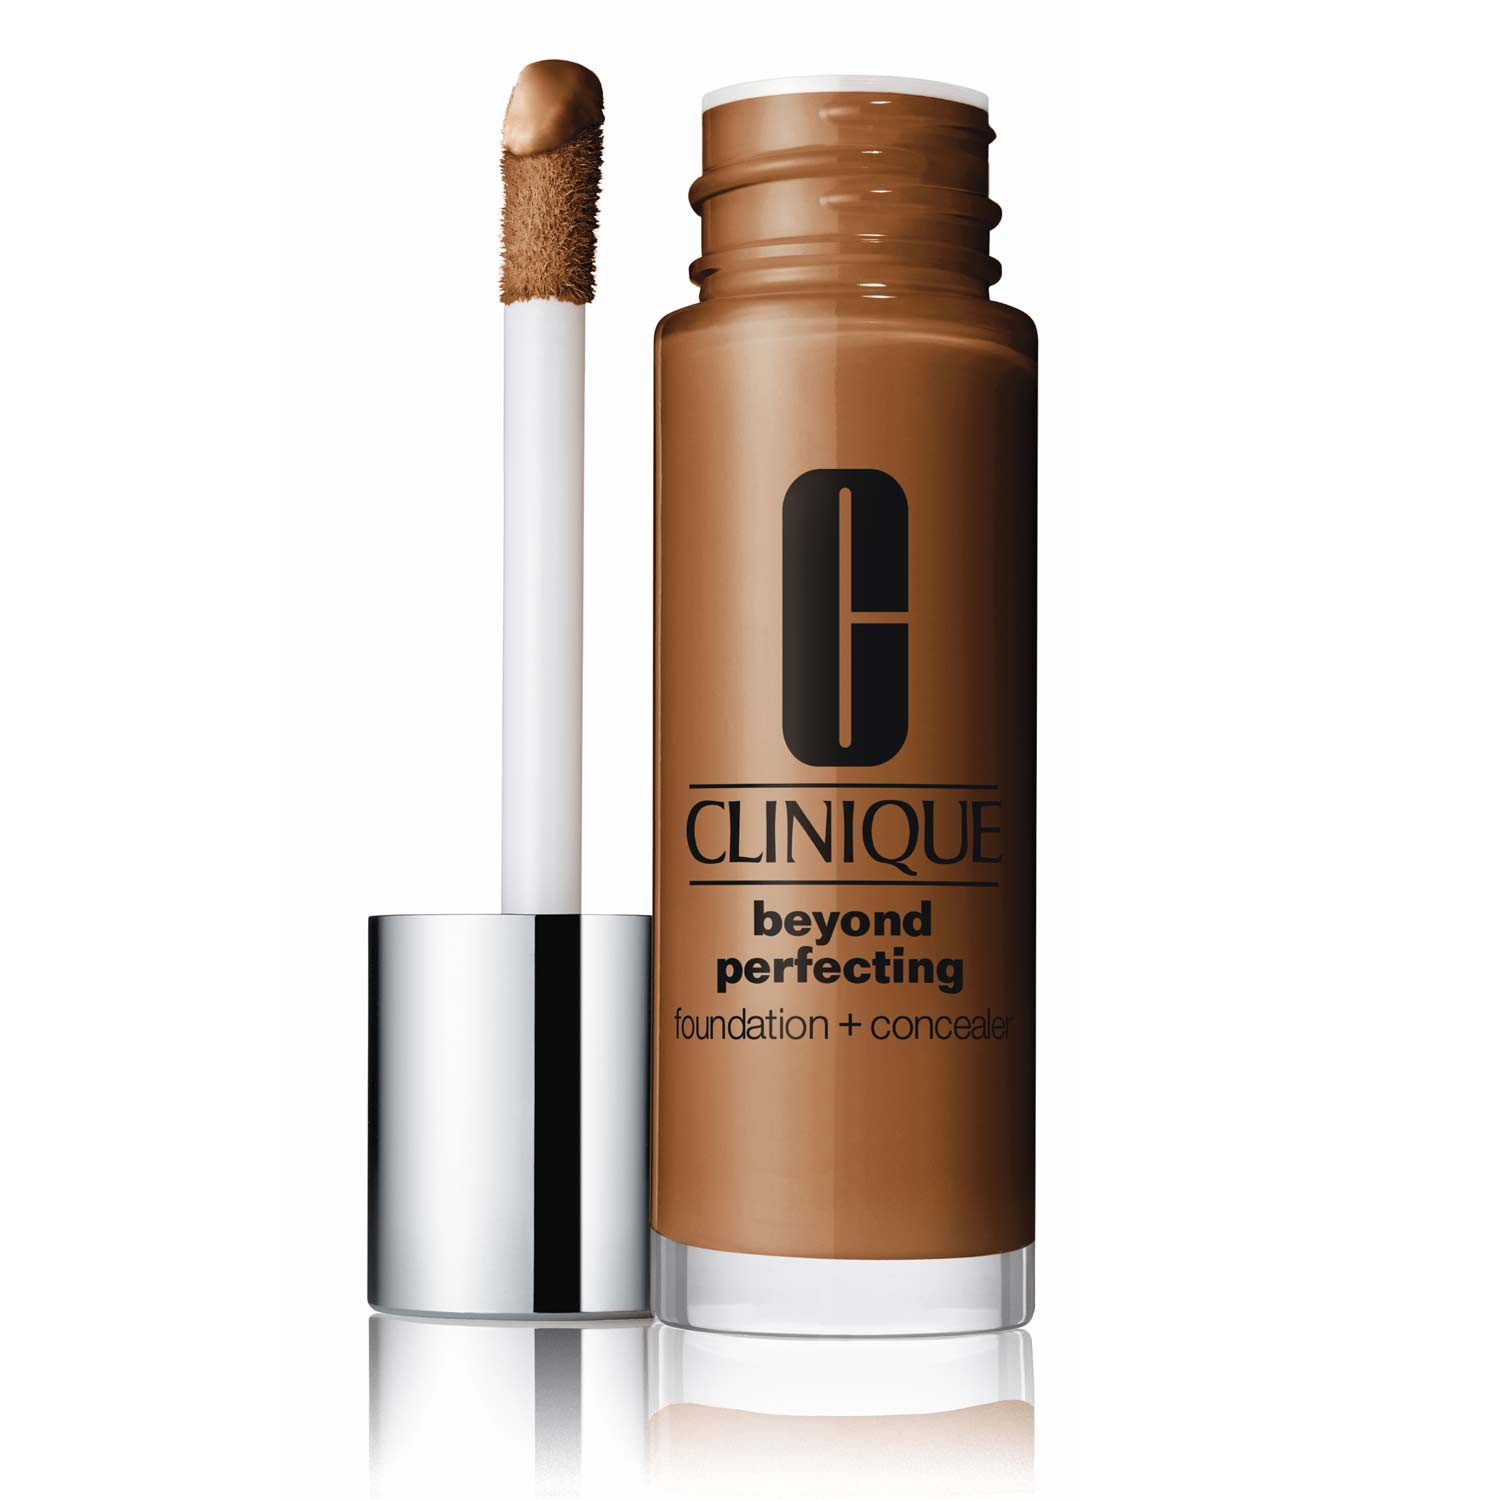 Clinique Beyond Perfecting Foundation and Concealer, £28.50